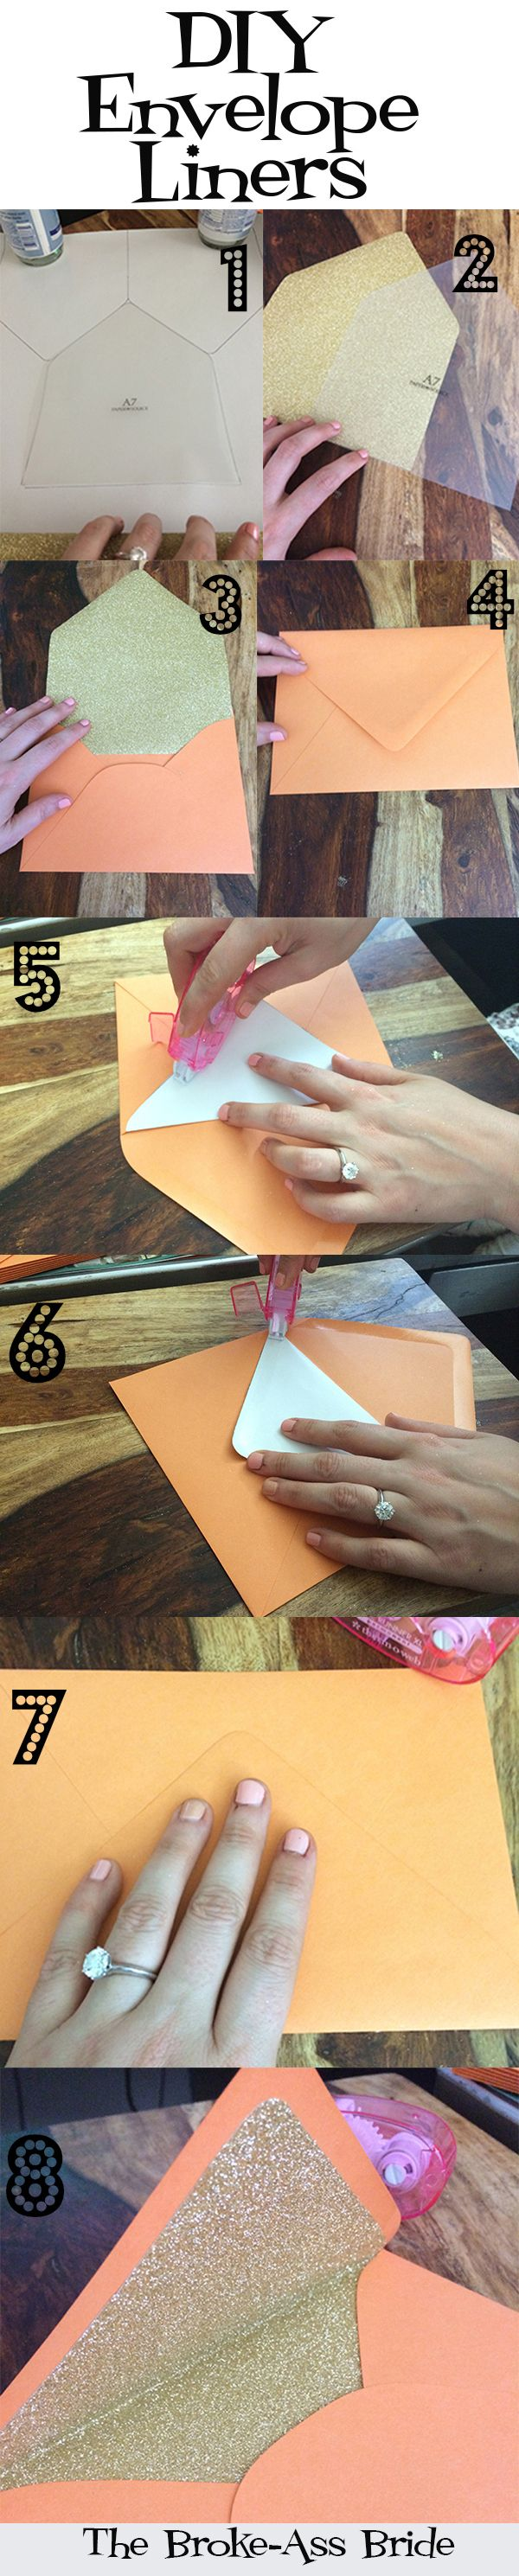 DIY or DIE: Custom Envelope Liners Full of Sparkle